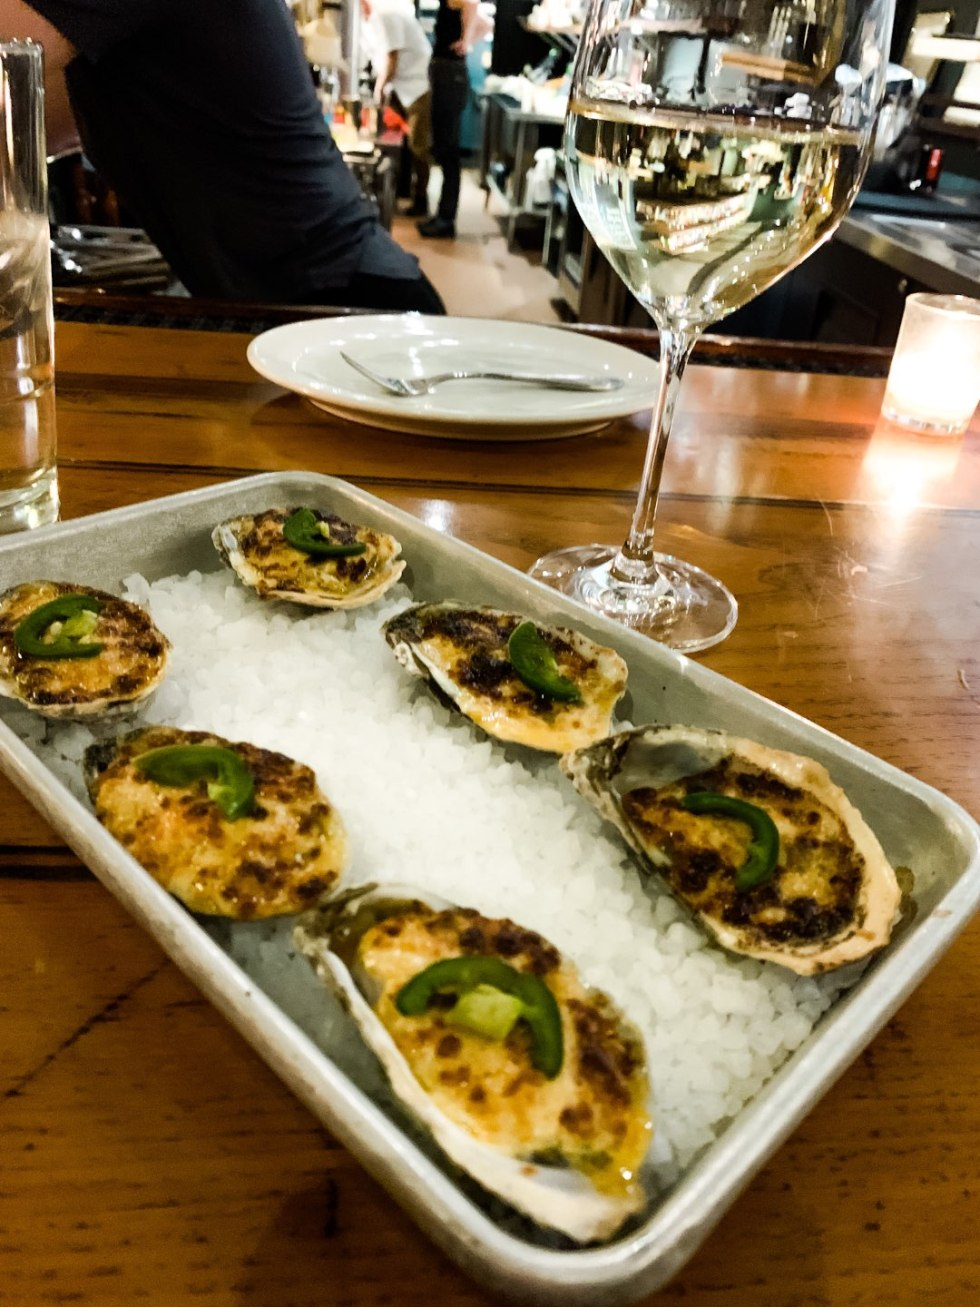 The Perfect Date Night Itinerary in 3 Raleigh Neighborhoods - I'm Fixin' To - @mbg0112 | Raleigh Date Night by popular NC blog, I'm Fixin' To: image of a pan of oyster at Wilmington St.